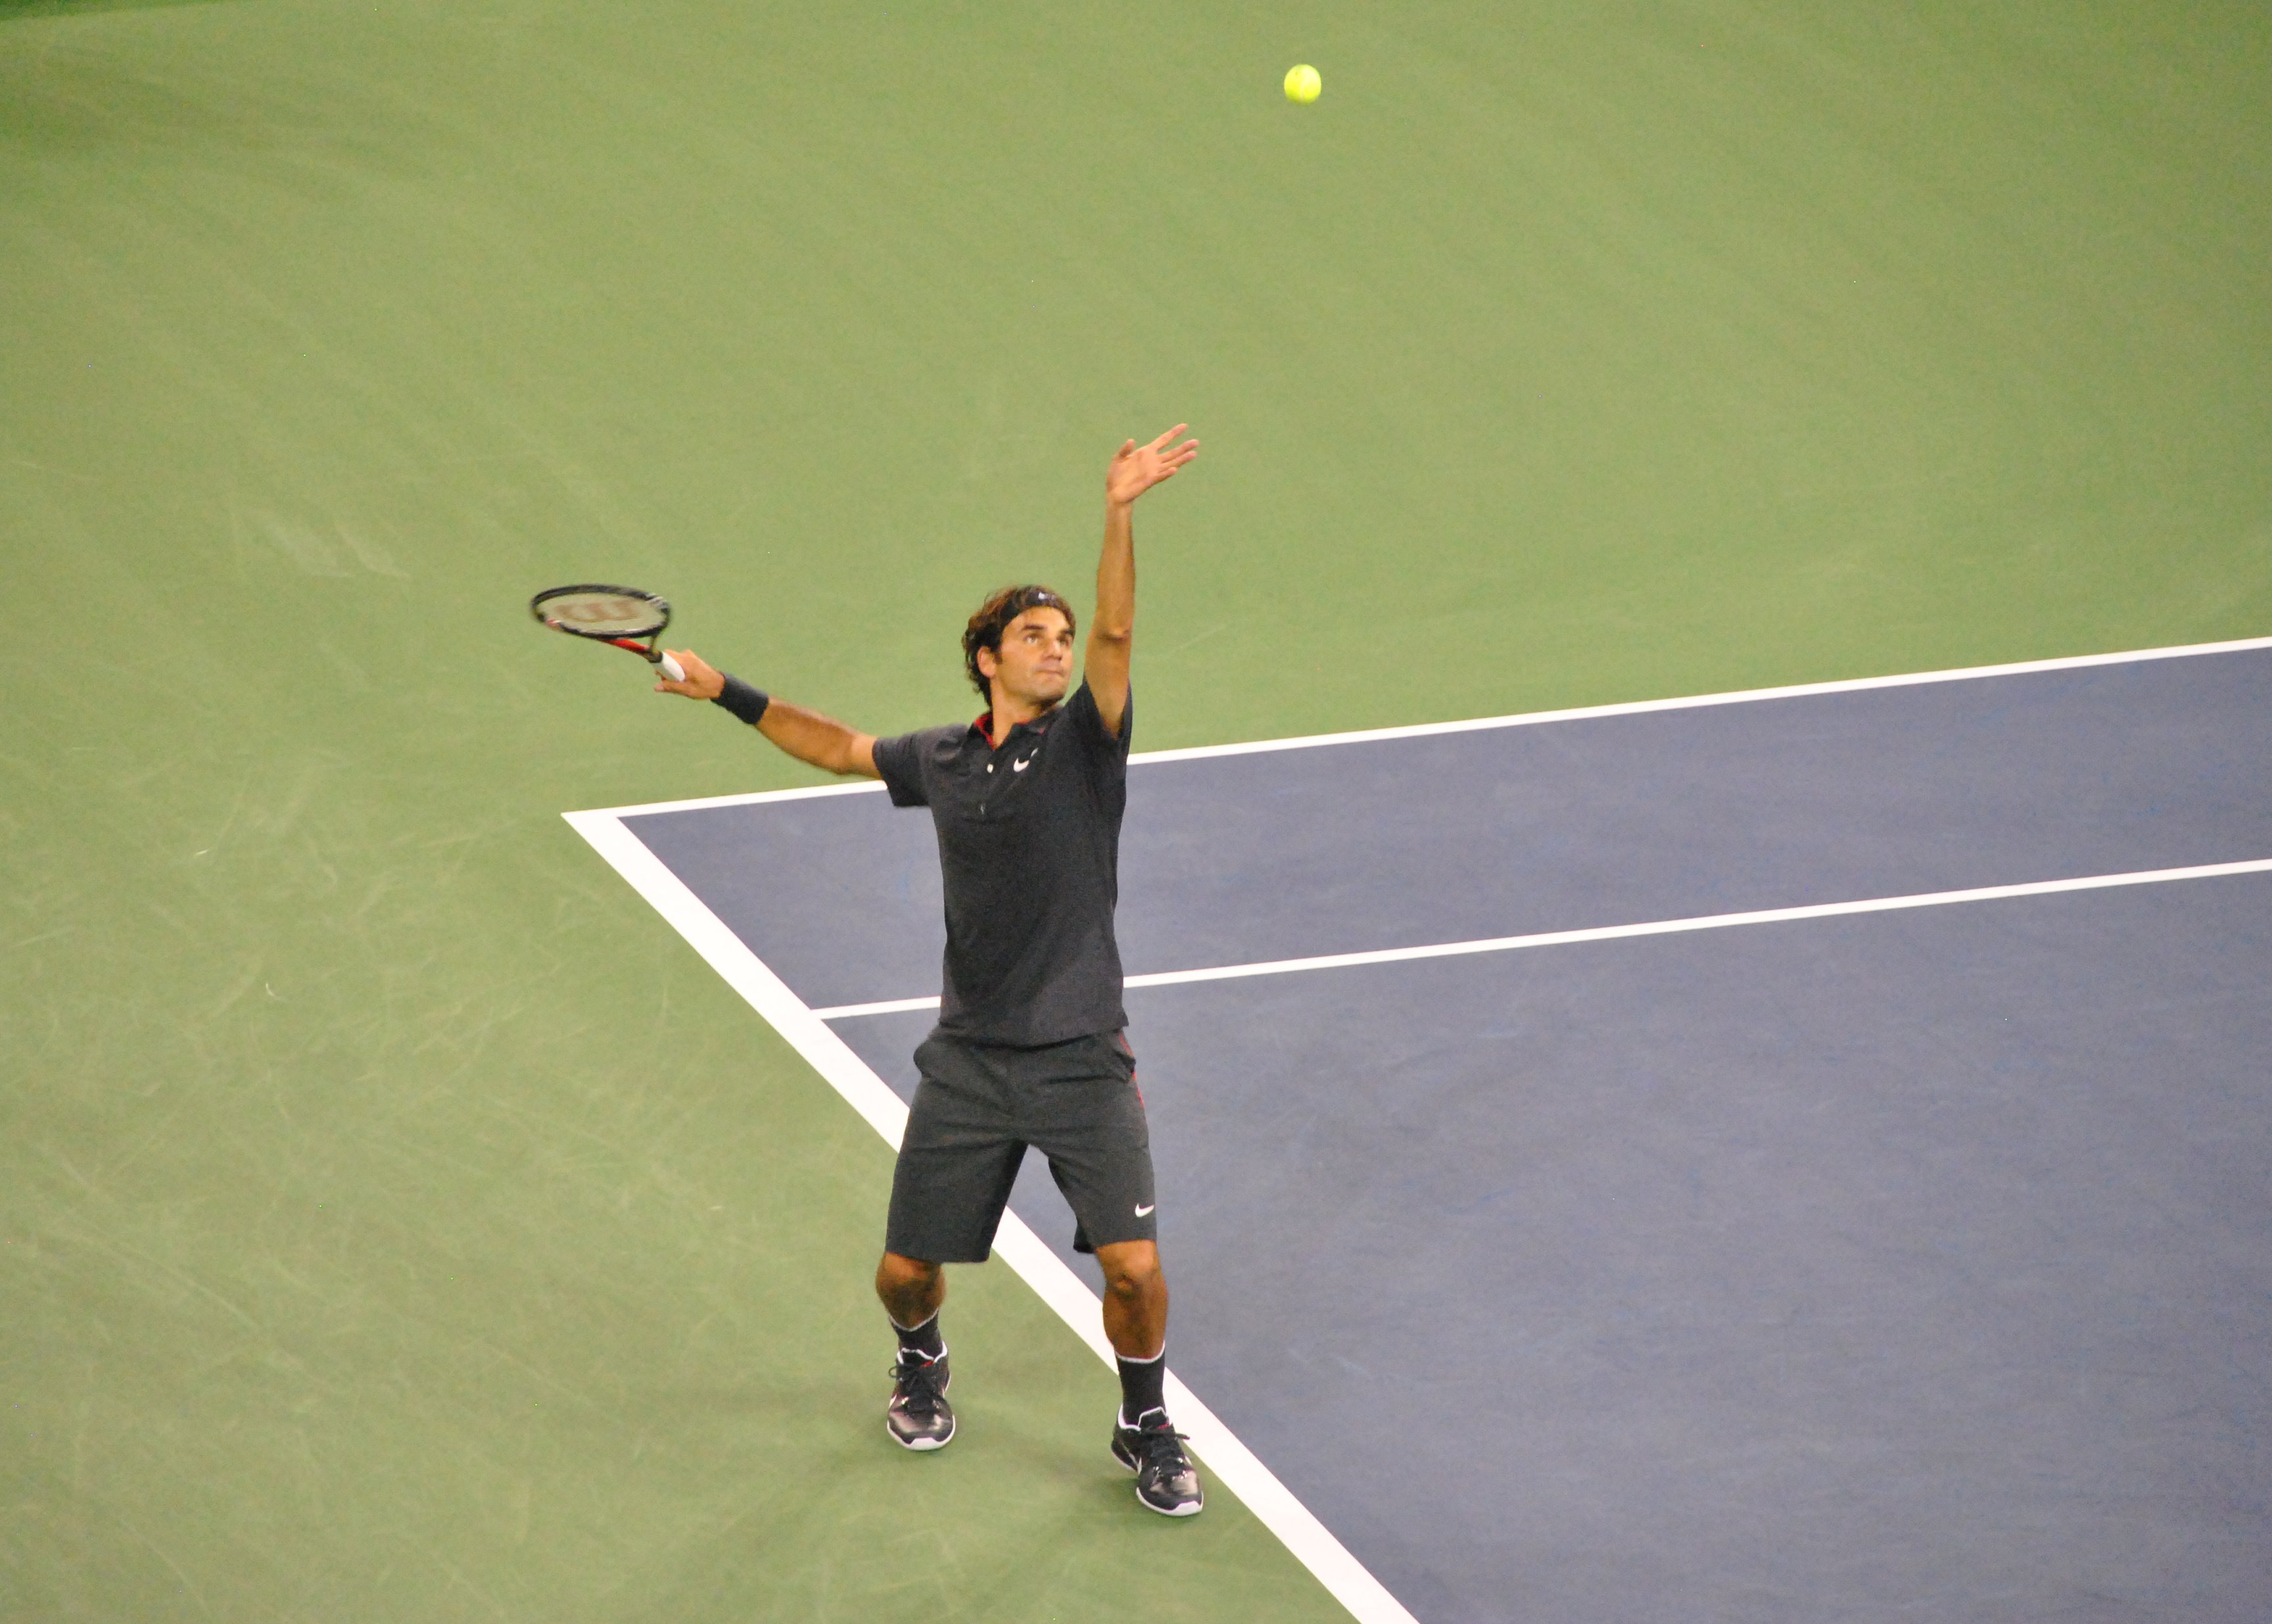 US Open 2014 Day 5: Three Matches To Watch   Tennis Obsessive